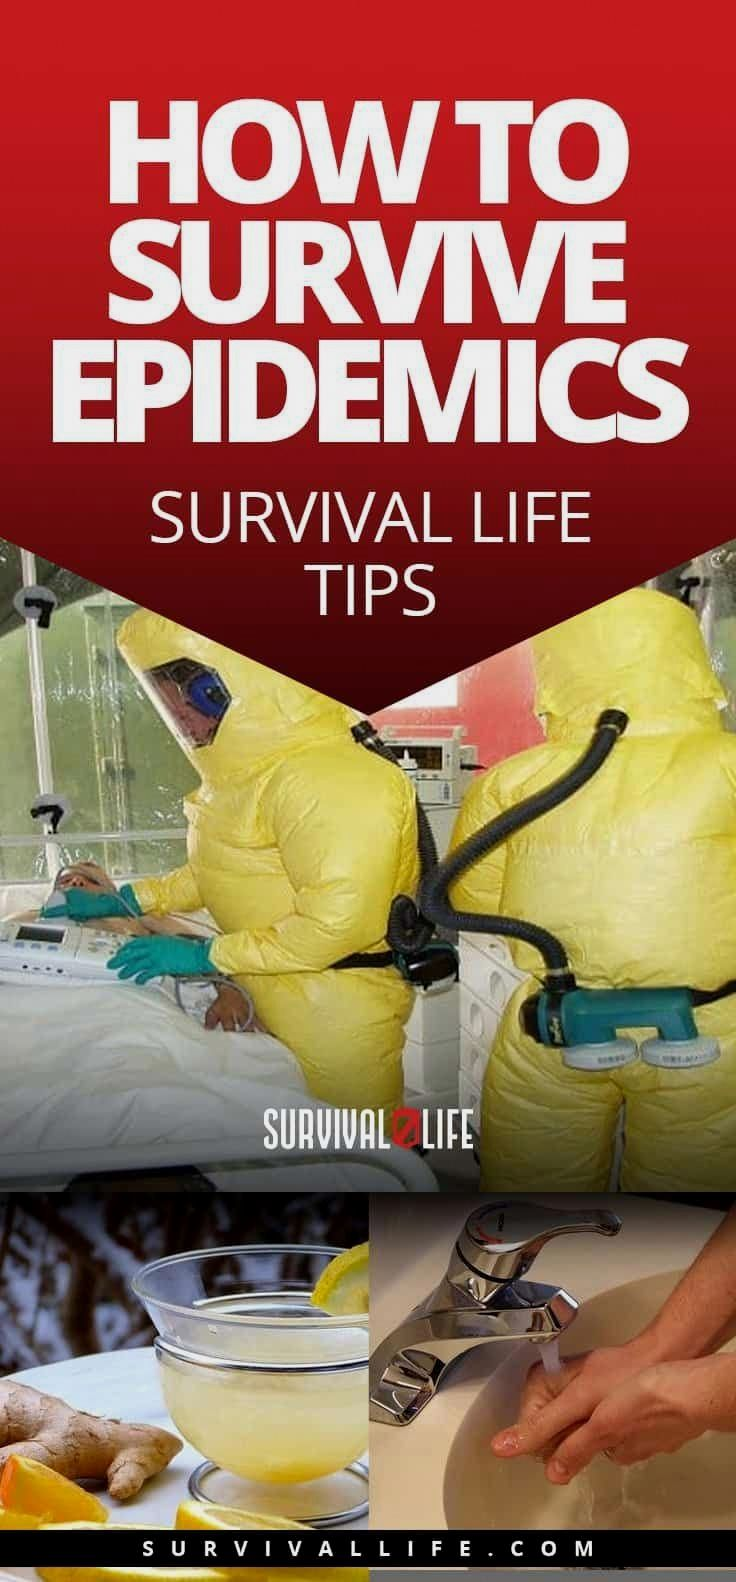 Pin by Familie Hassel on Outbreak preparedness in 2020